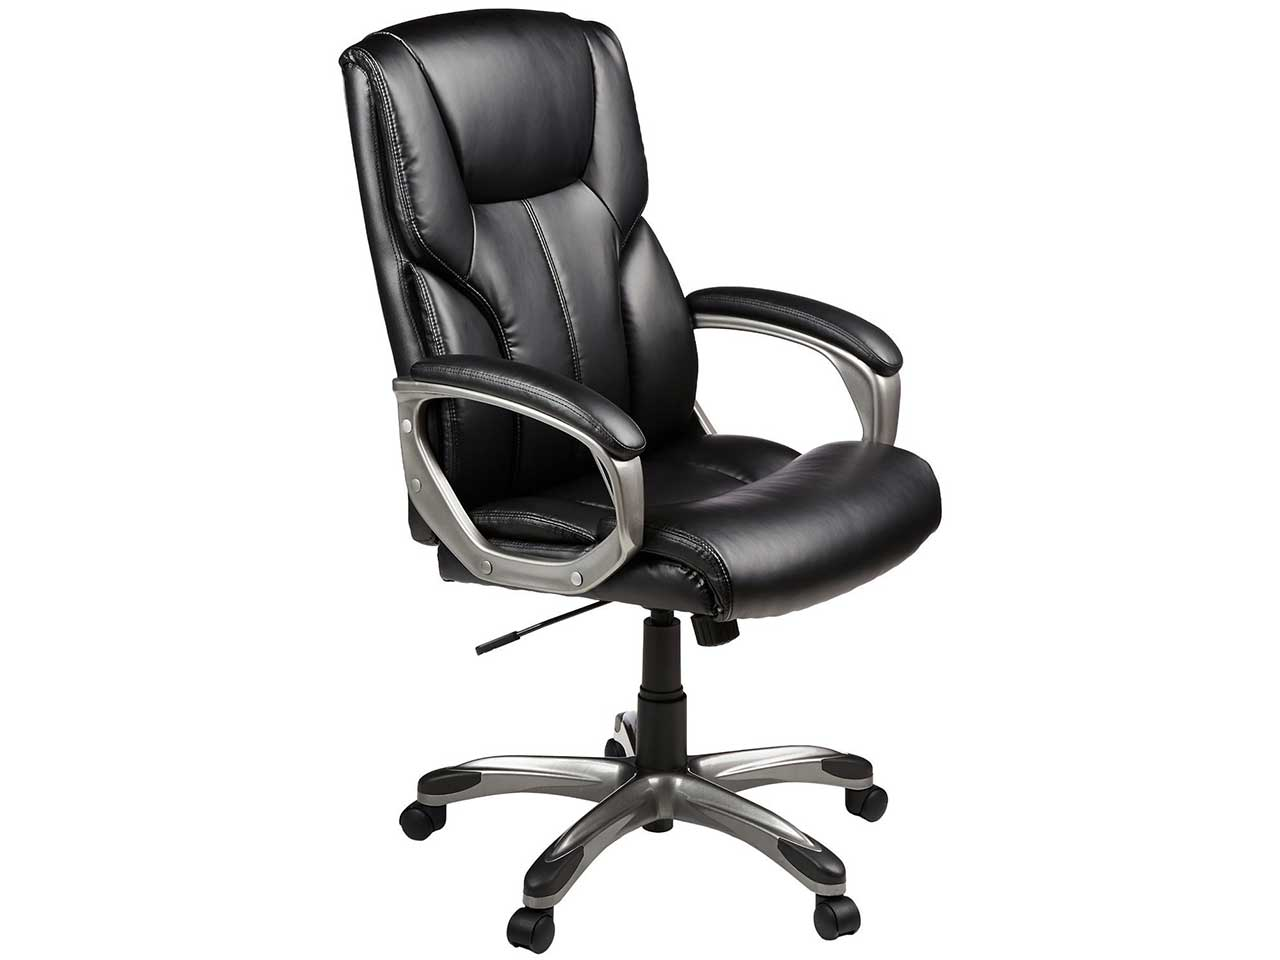 The Most Loved High-Back Executive Chair For The Office